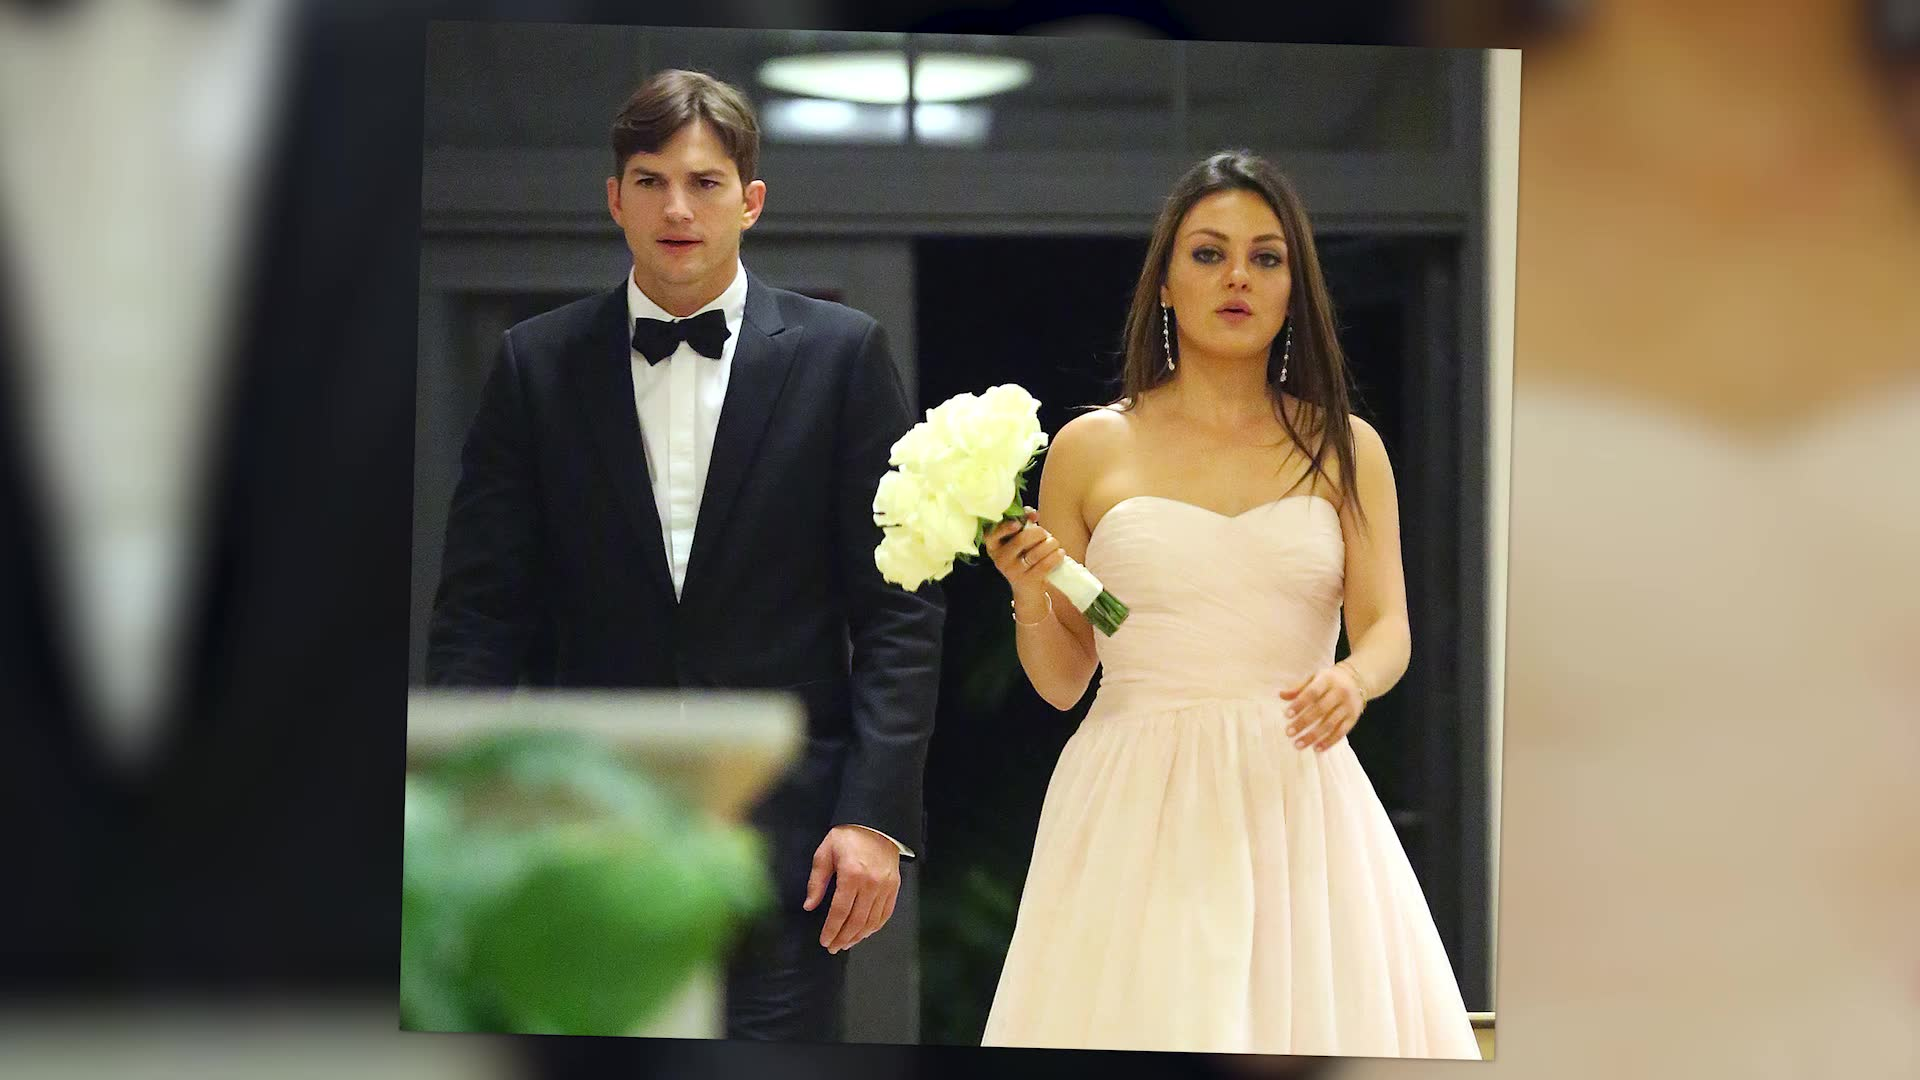 Mila Kunis And Ashton Kutcher Reportedly Married On 4th July